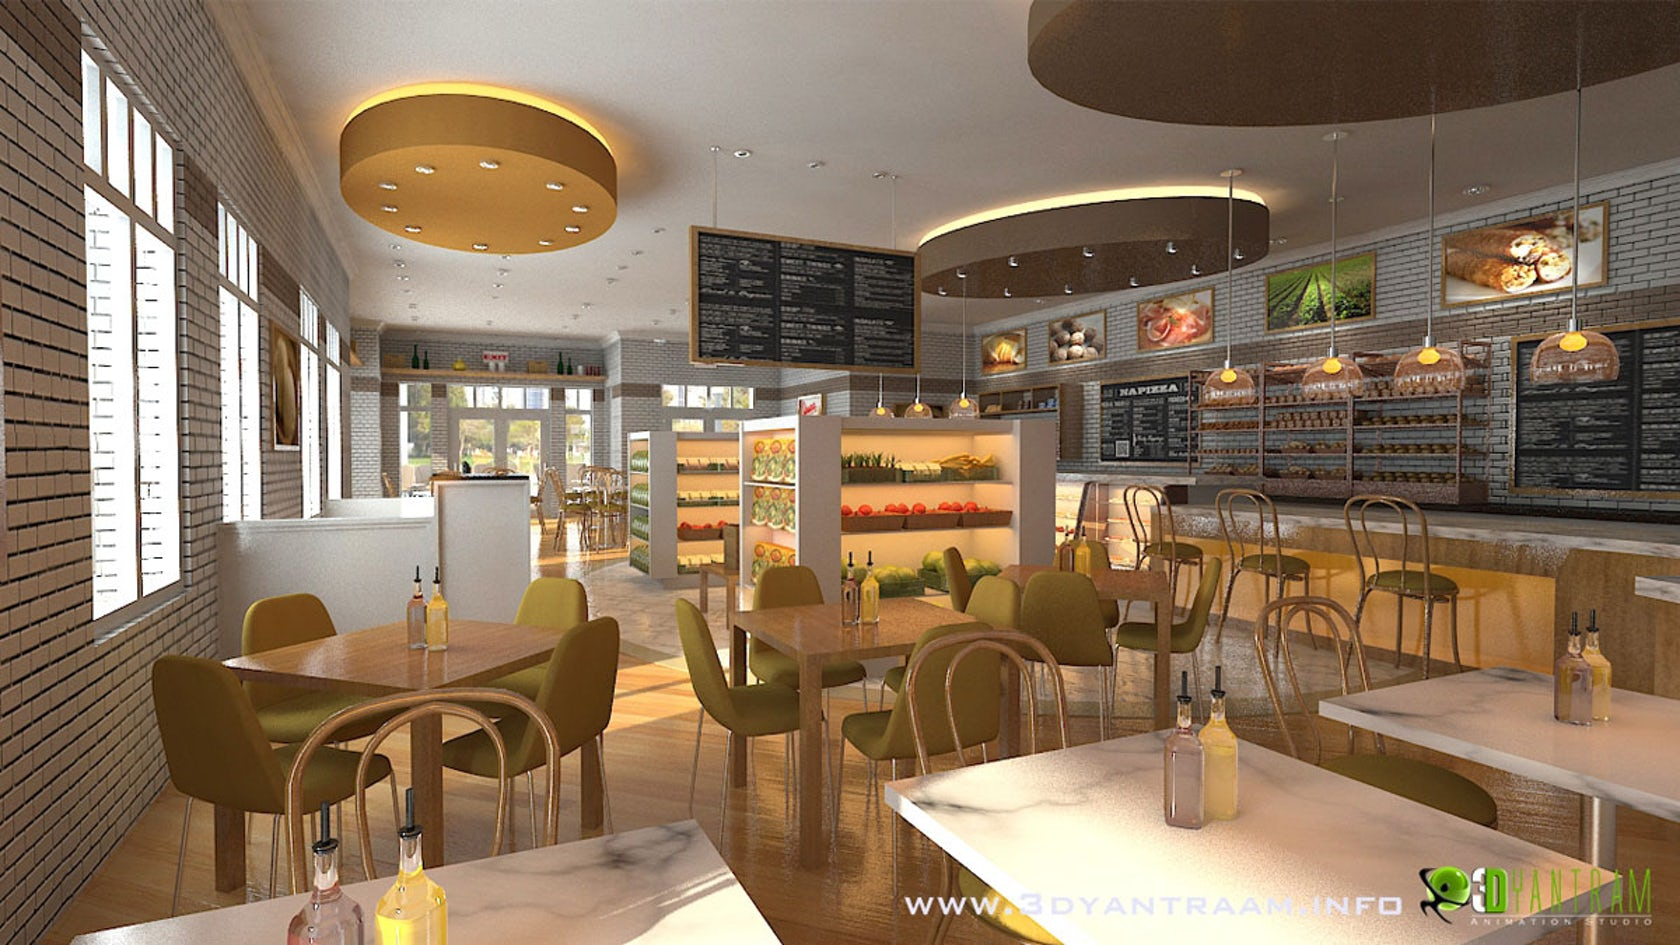 Interesting 3d cgi design for food court architizer - Living room cafe menu philadelphia ...